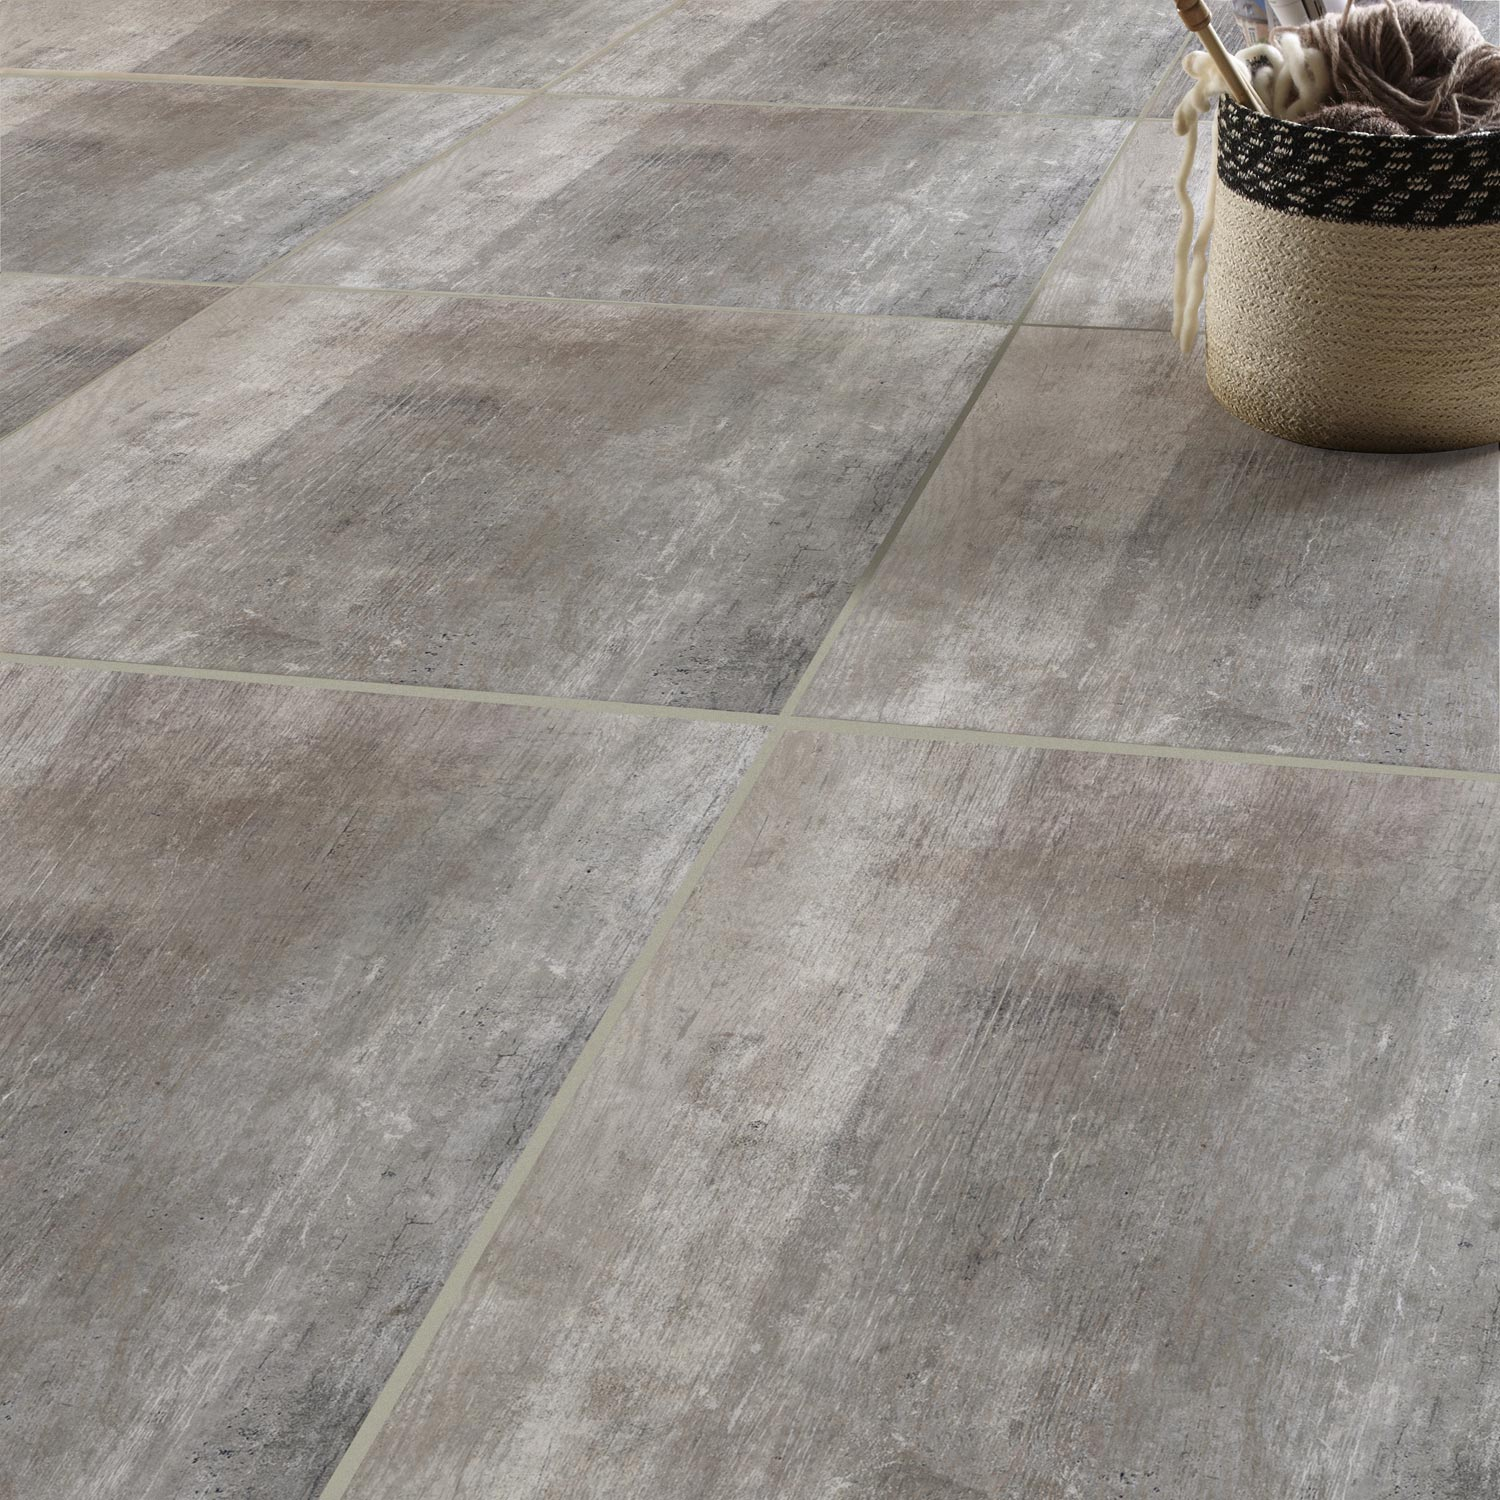 Carrelage gris 25x25 for Carrelage exterieur gris